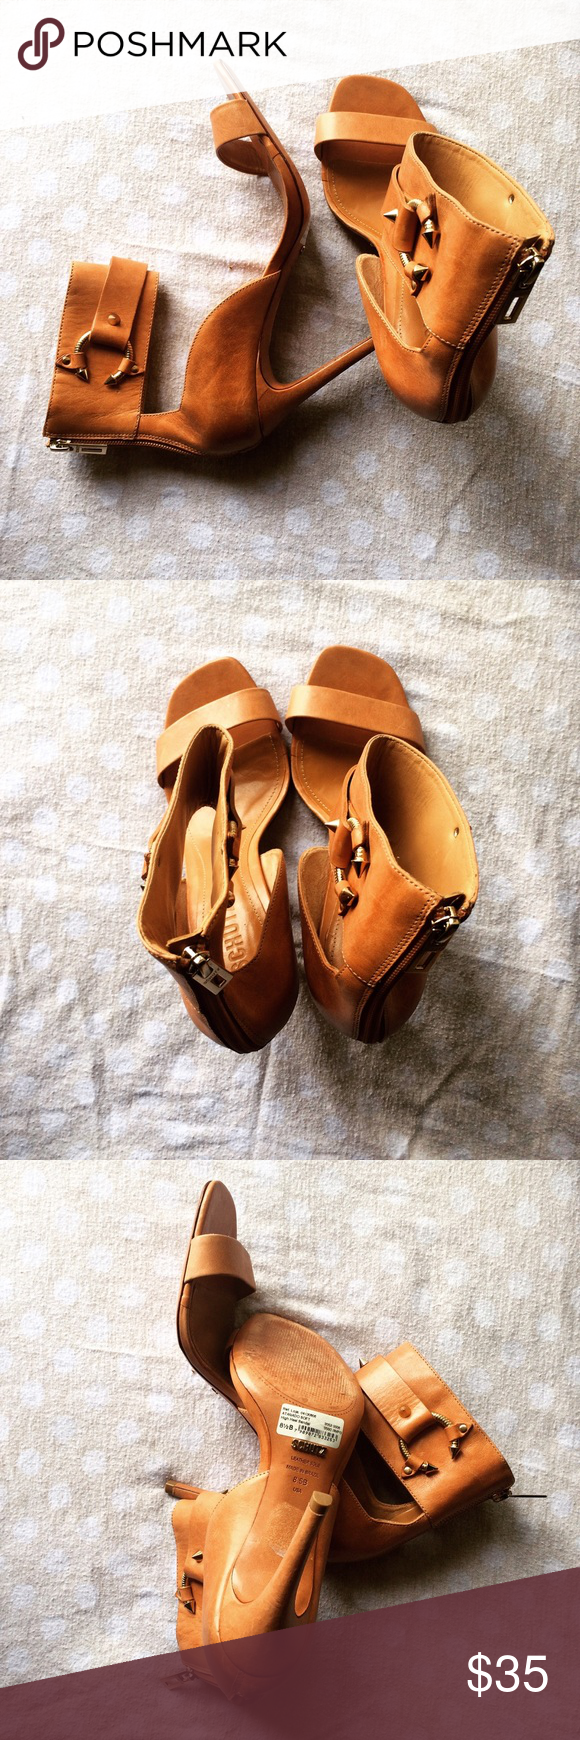 Leather Open-toed tan heels Quality lightweight leather open toed tan heels. Only worn once. shultz Shoes Heels